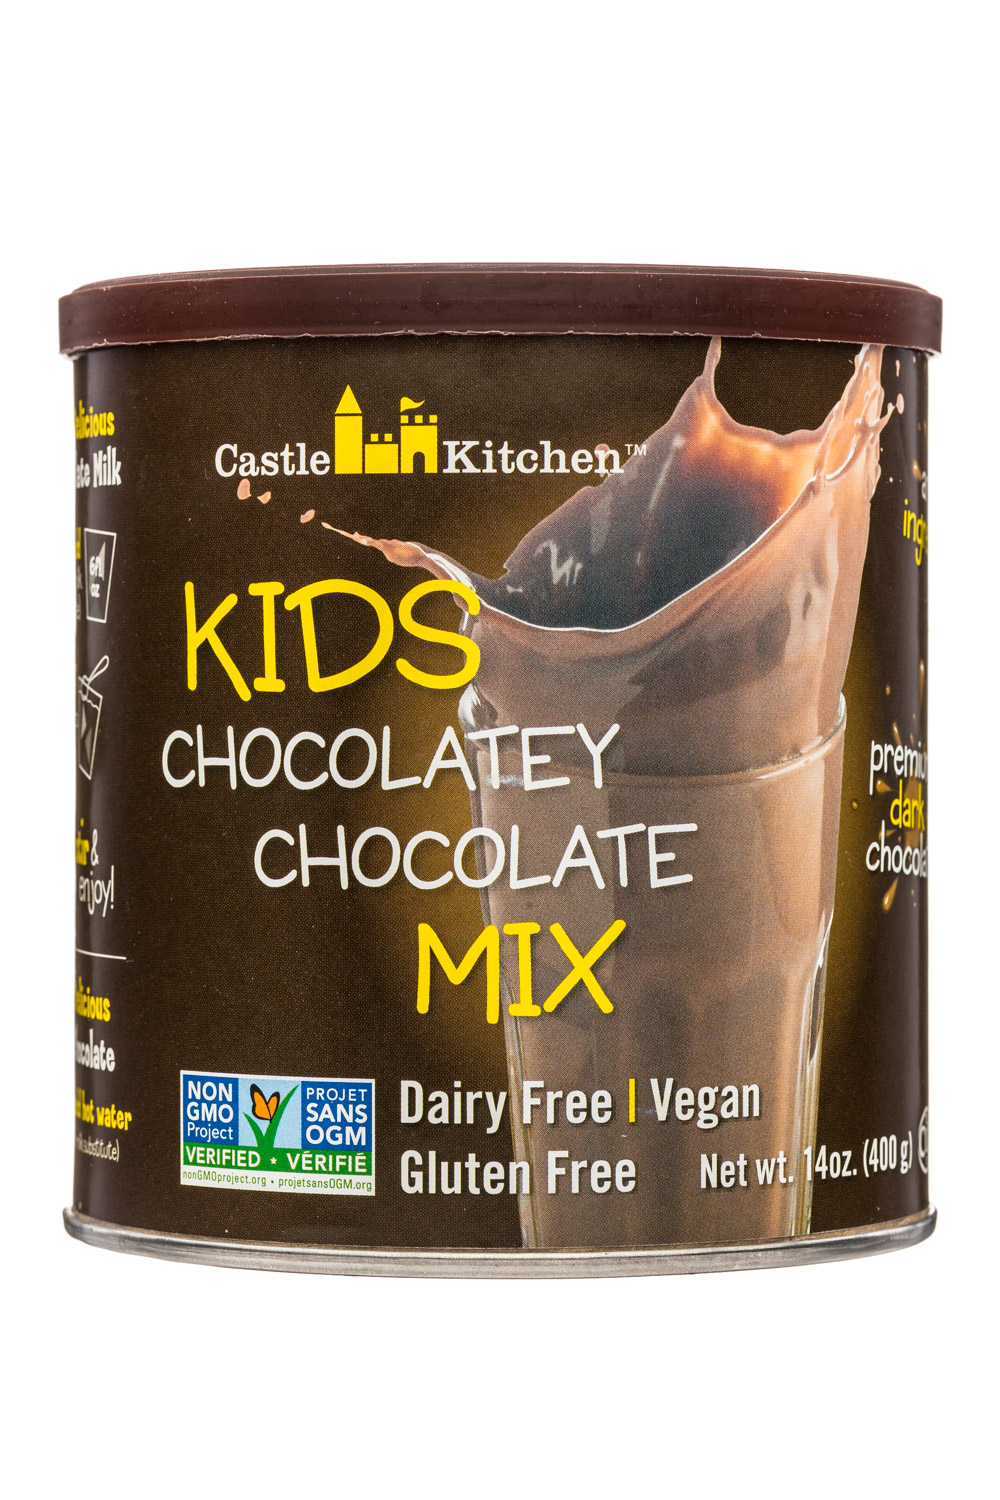 Kids Chocolatey Chocolate Mix